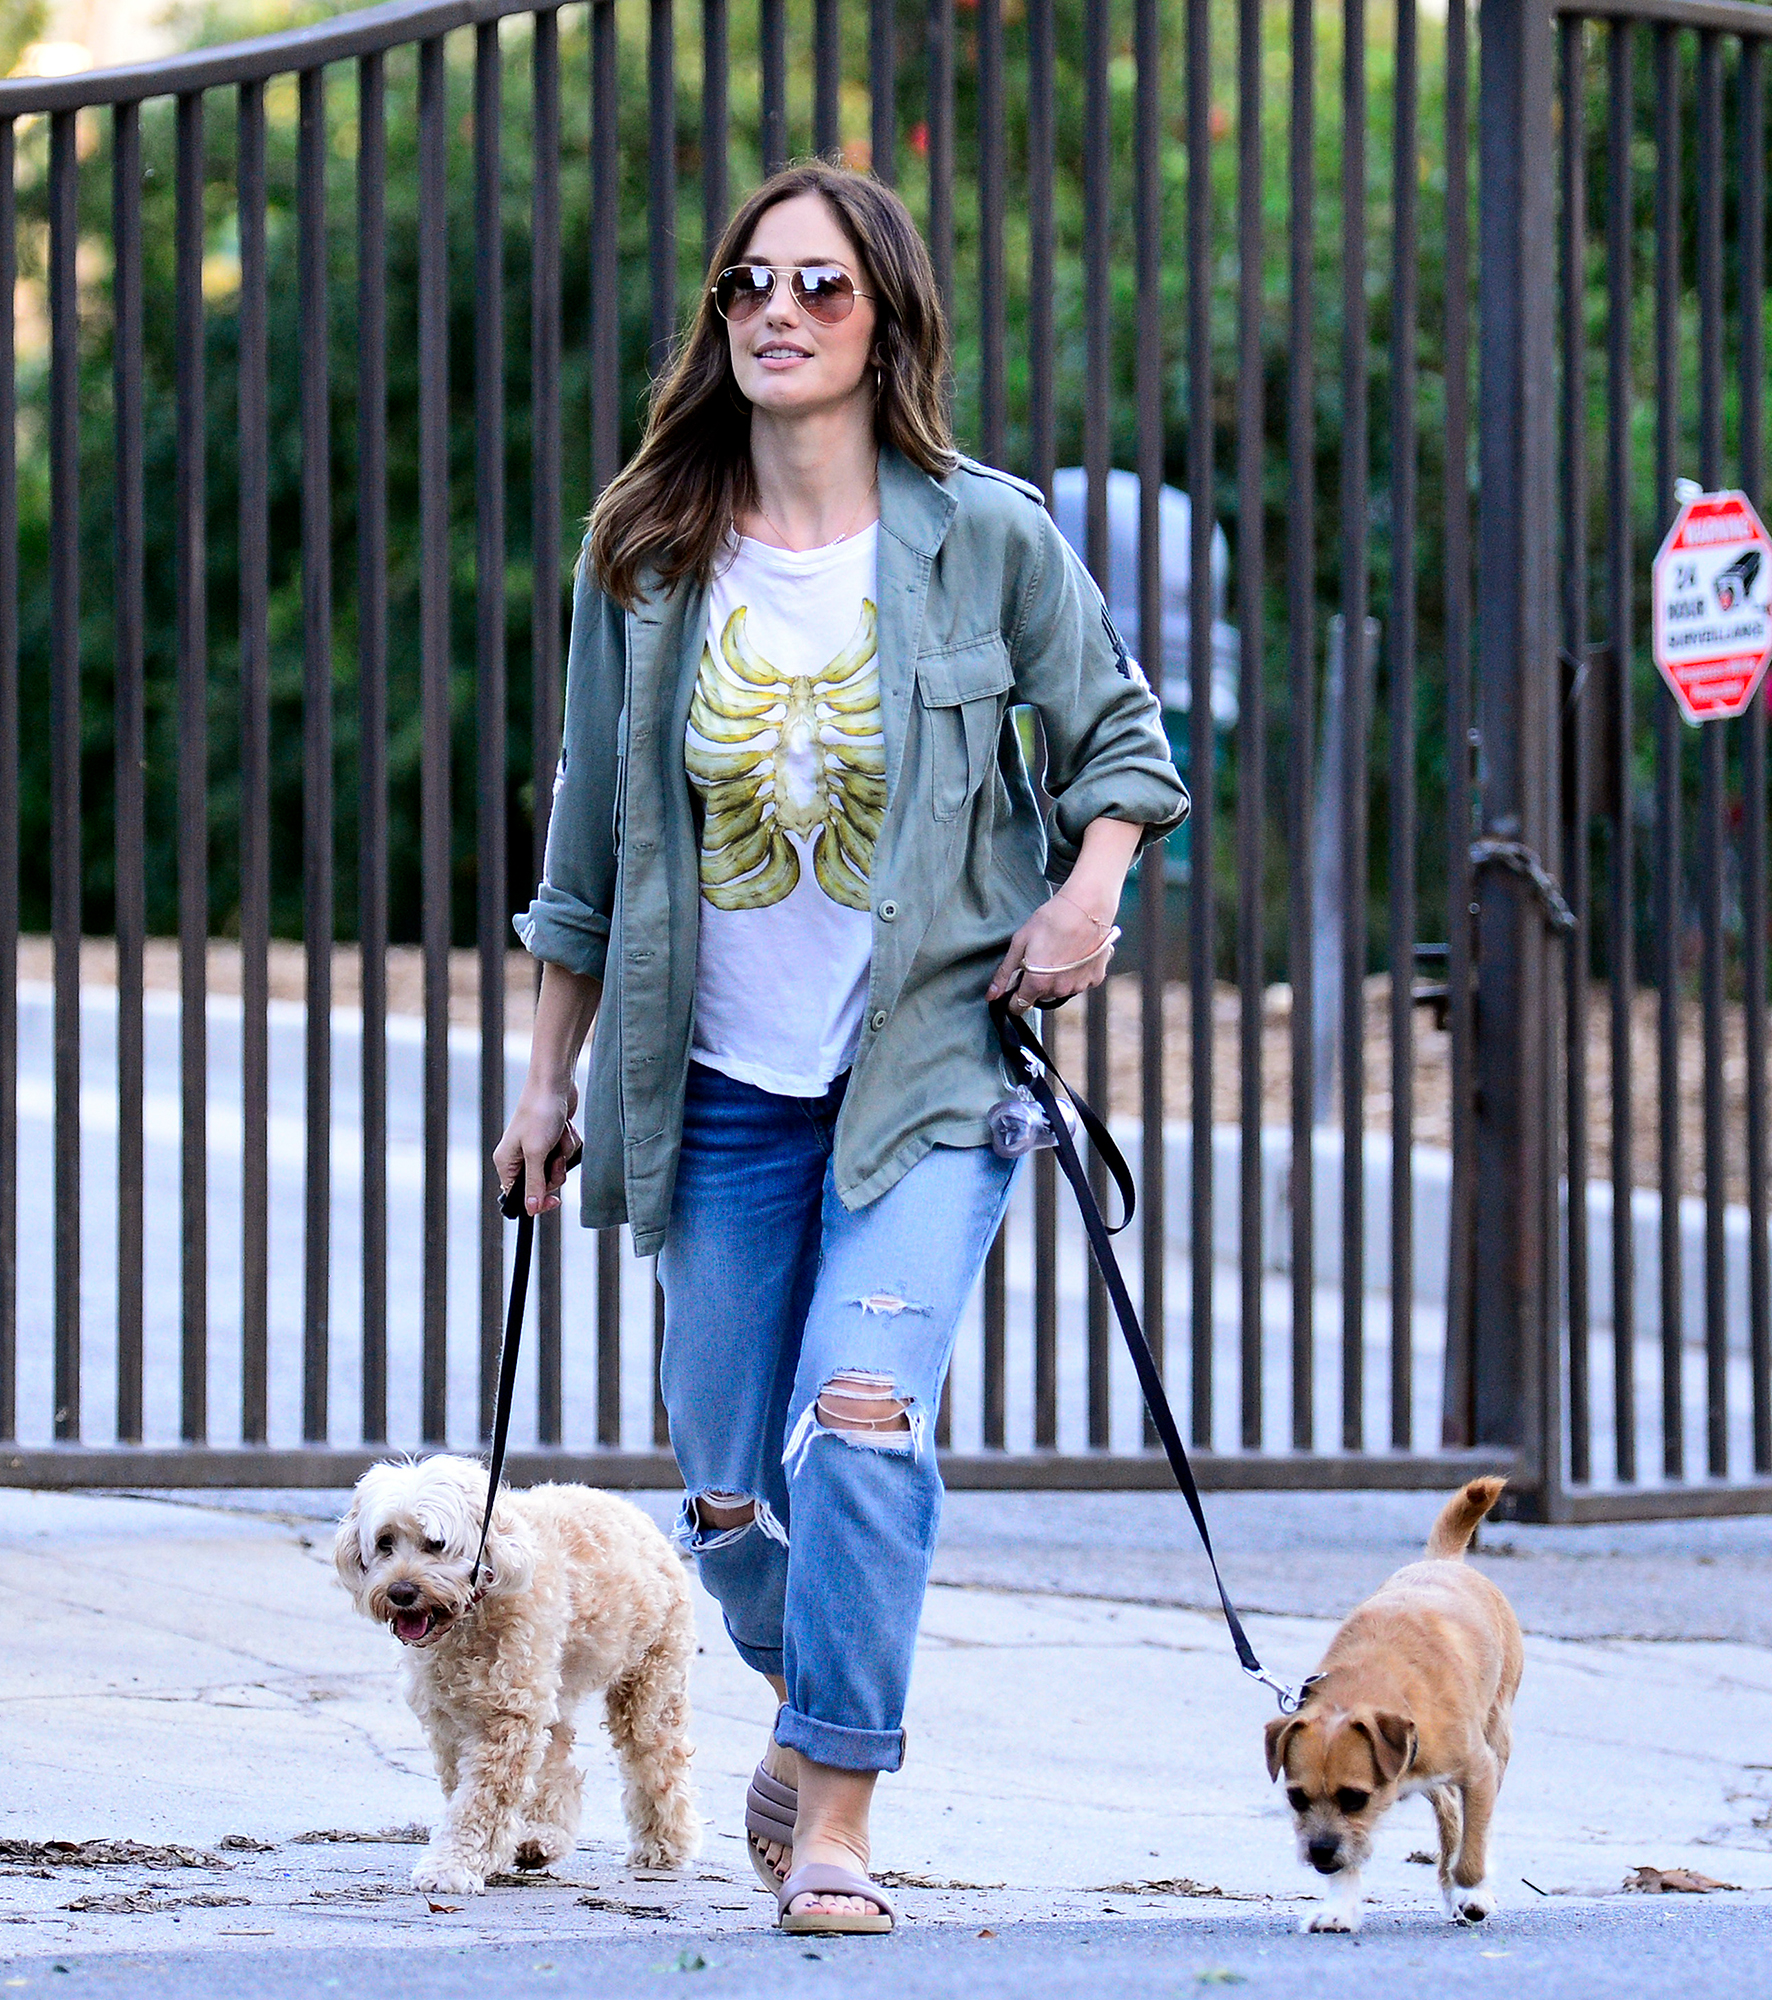 EXCLUSIVE: Dog lover Minka Kelly plays with her pooches in LA